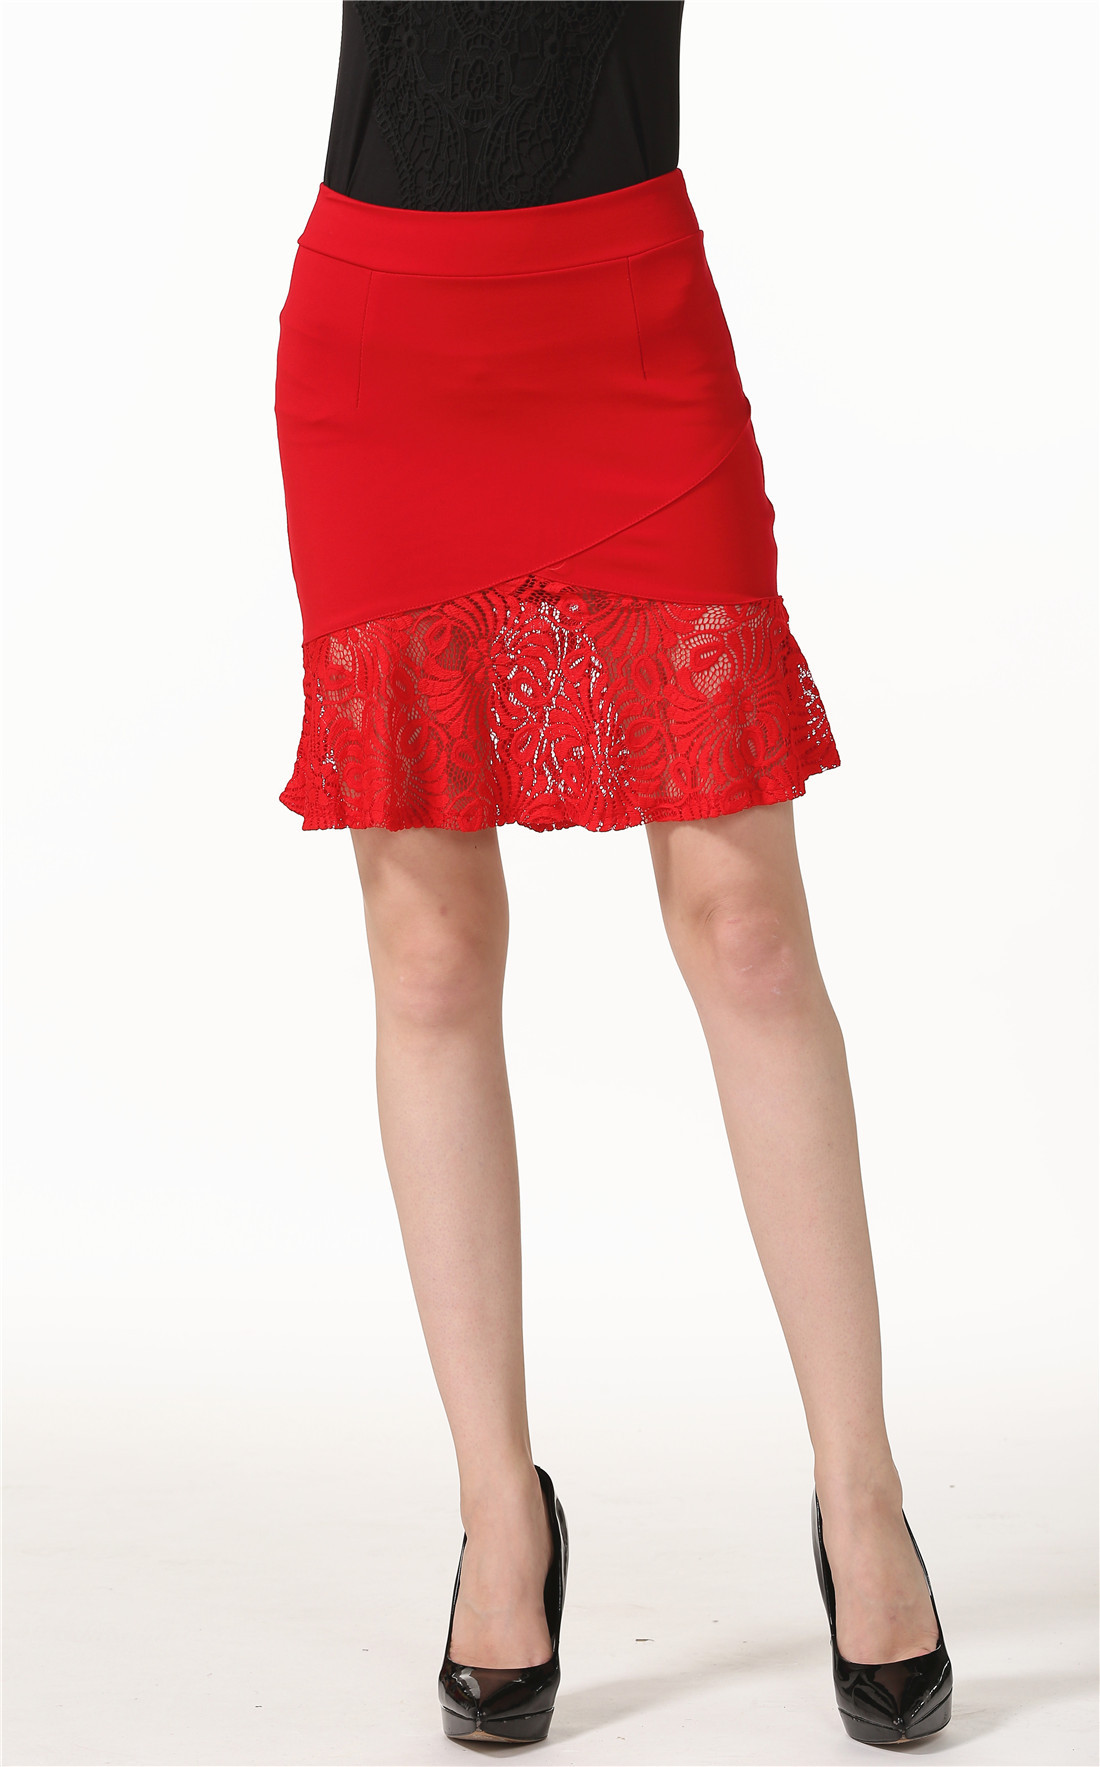 Summer New Style Europe And America Lace-Panel Skirt High-waisted Elasticity Skirt Sexy Sheath Fishtail Skirt Women's S-5xl